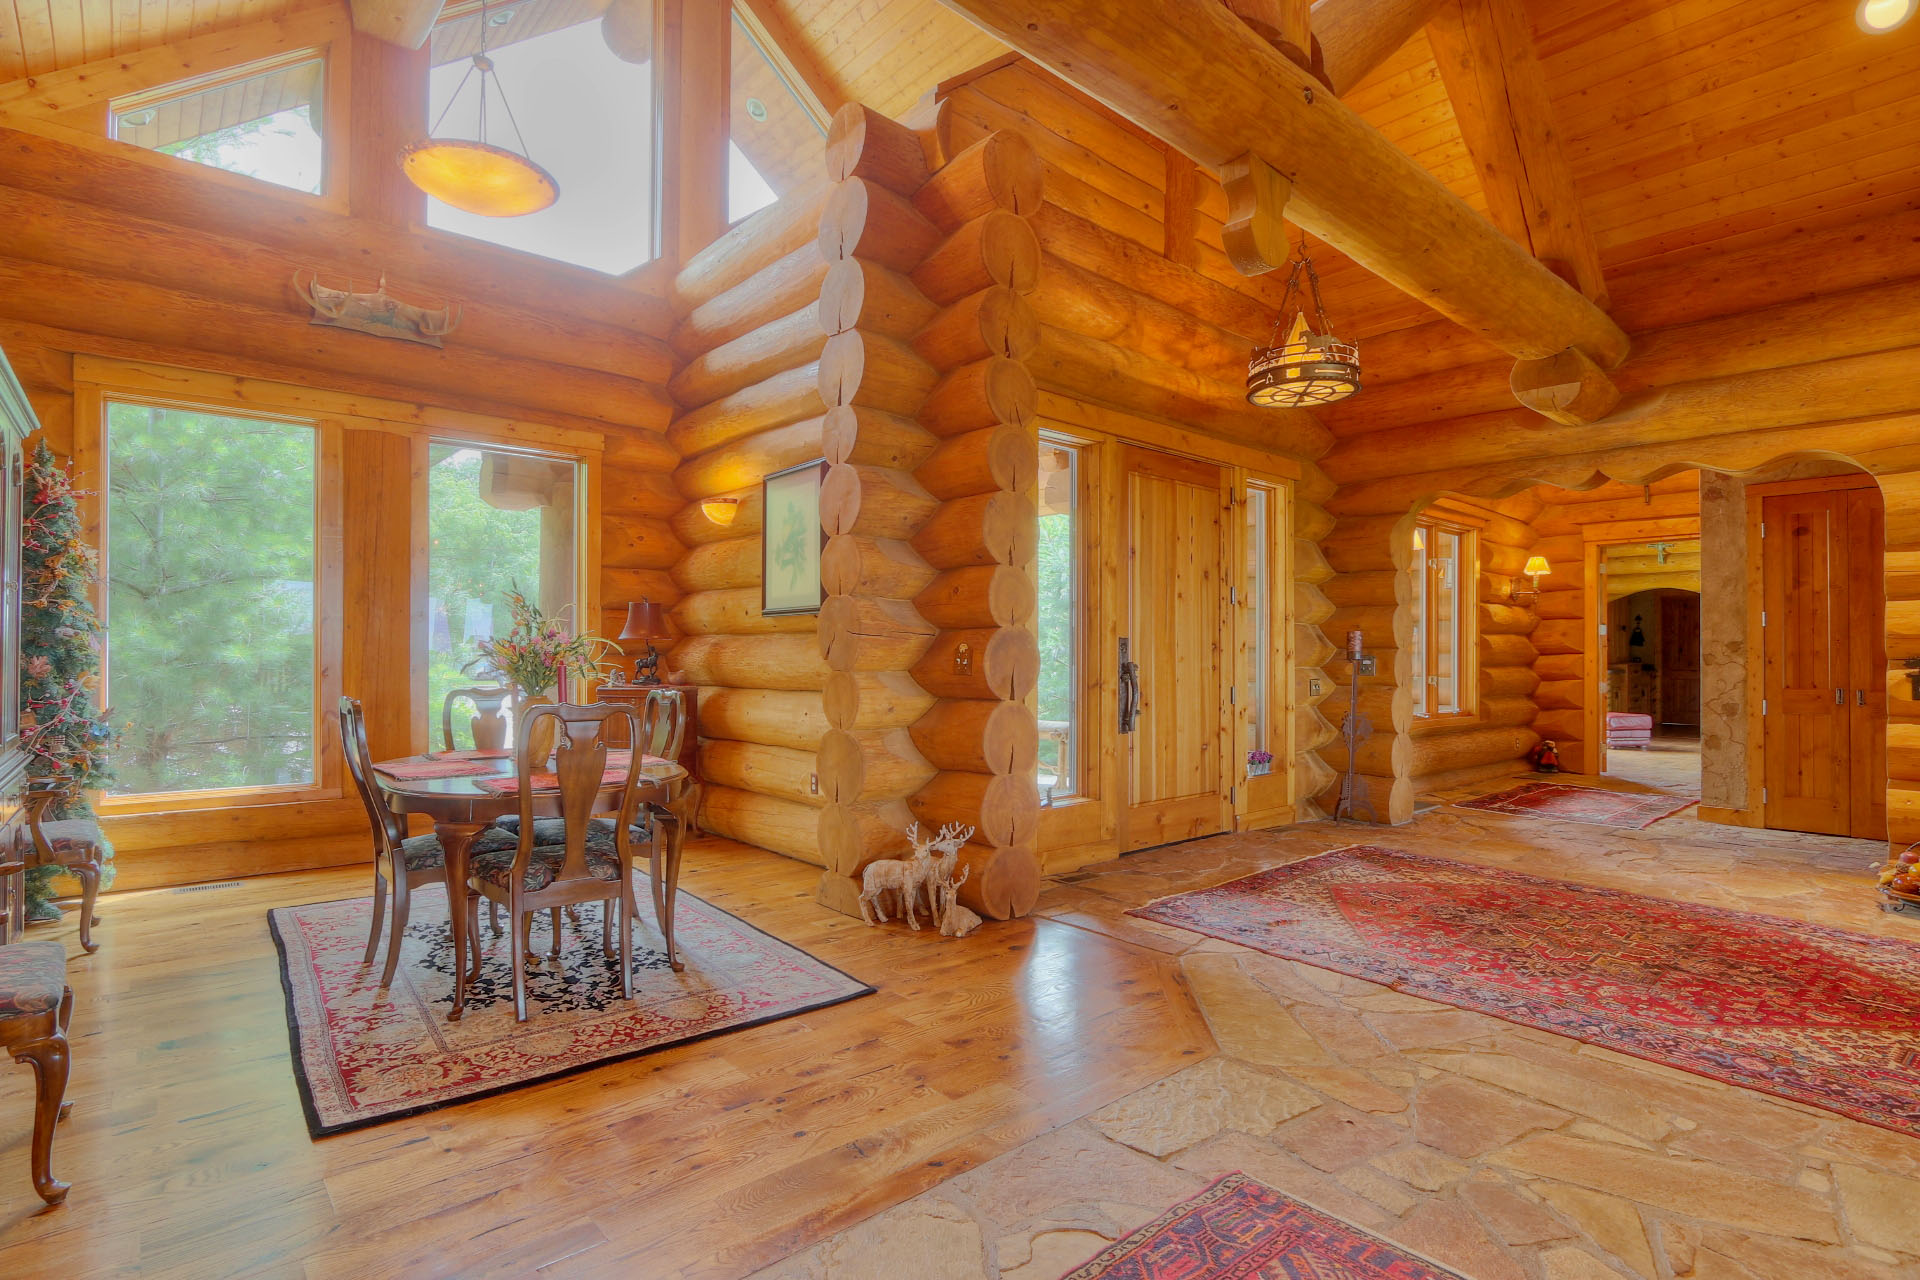 Log home photo gallery north american log crafters canada usa - Inside house ...